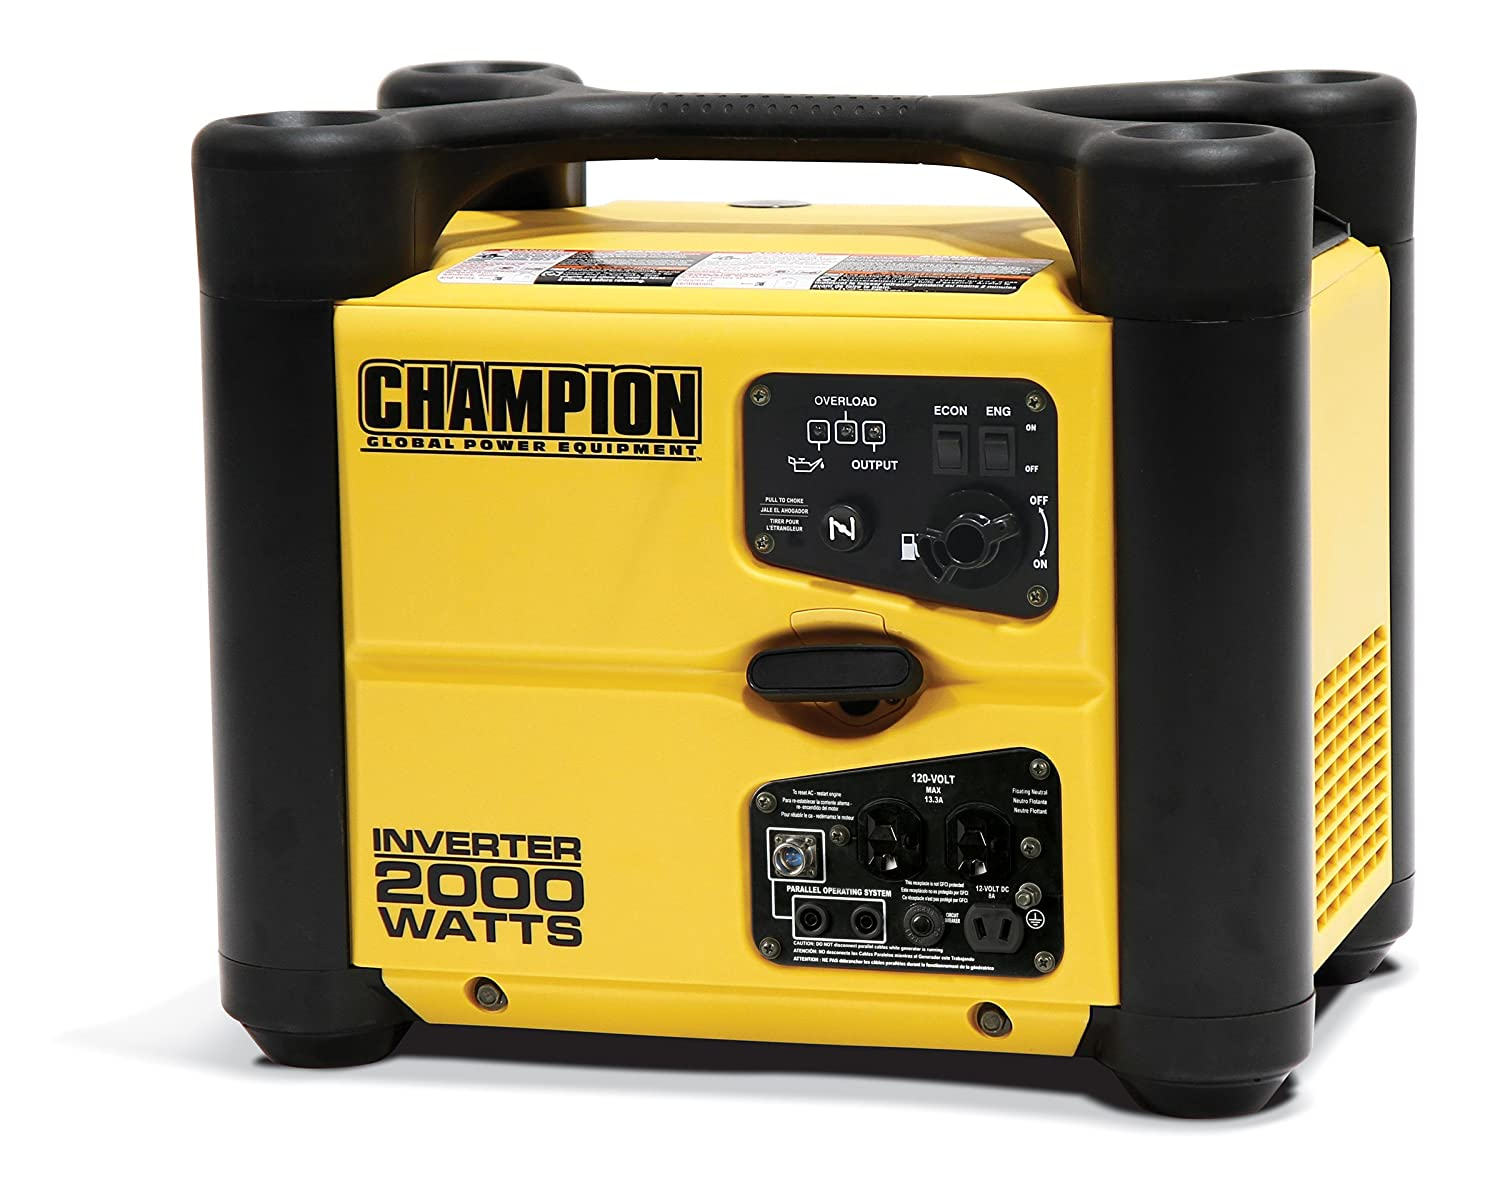 Champion 2000 Watt Stackable Portable Inverter 50 Rv Wiring Diagram Related Keywords Suggestions Generator Vehicle Power Inverters Garden Outdoor